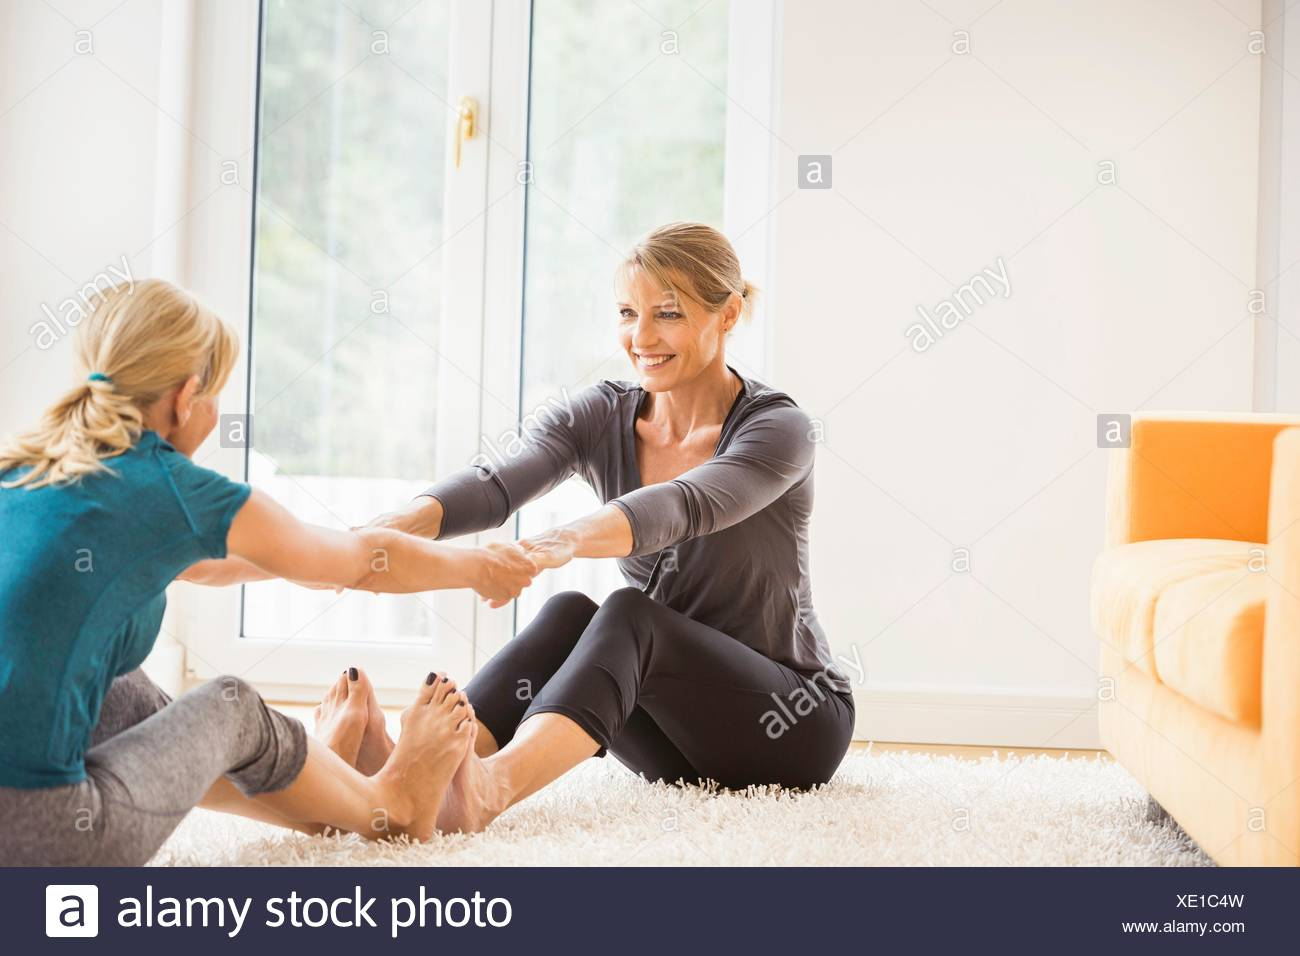 Two mature women exercising together on living room floor - Stock Image